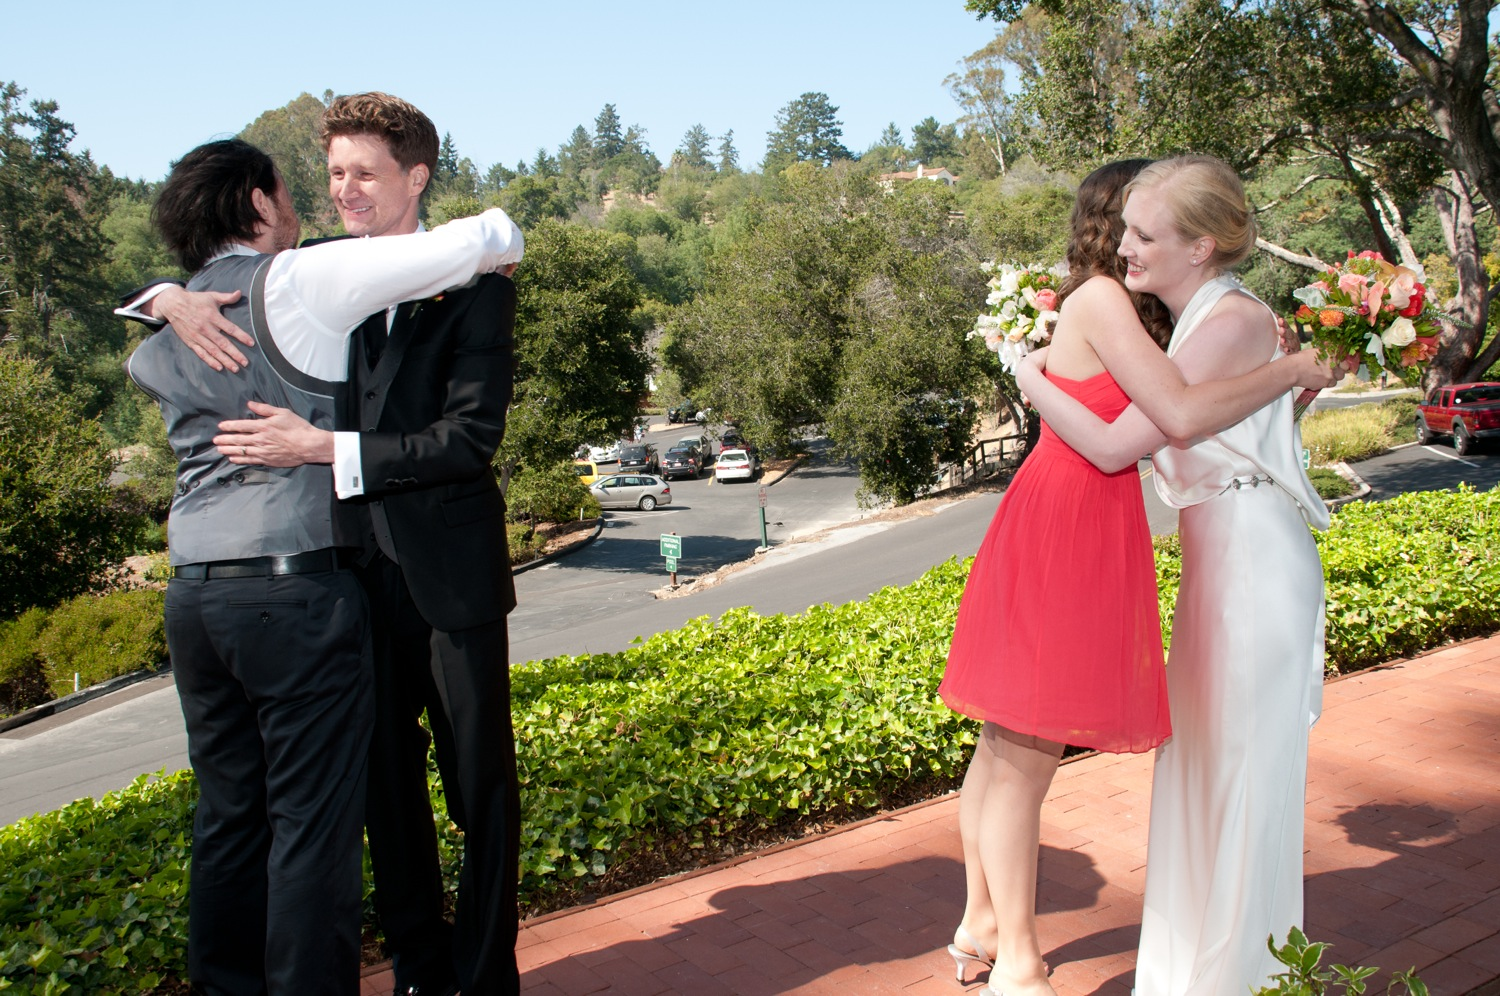 Jerram hugs his best man, Jerram and Elizabeth and Christine hug.  Really, there's a log of hugs.